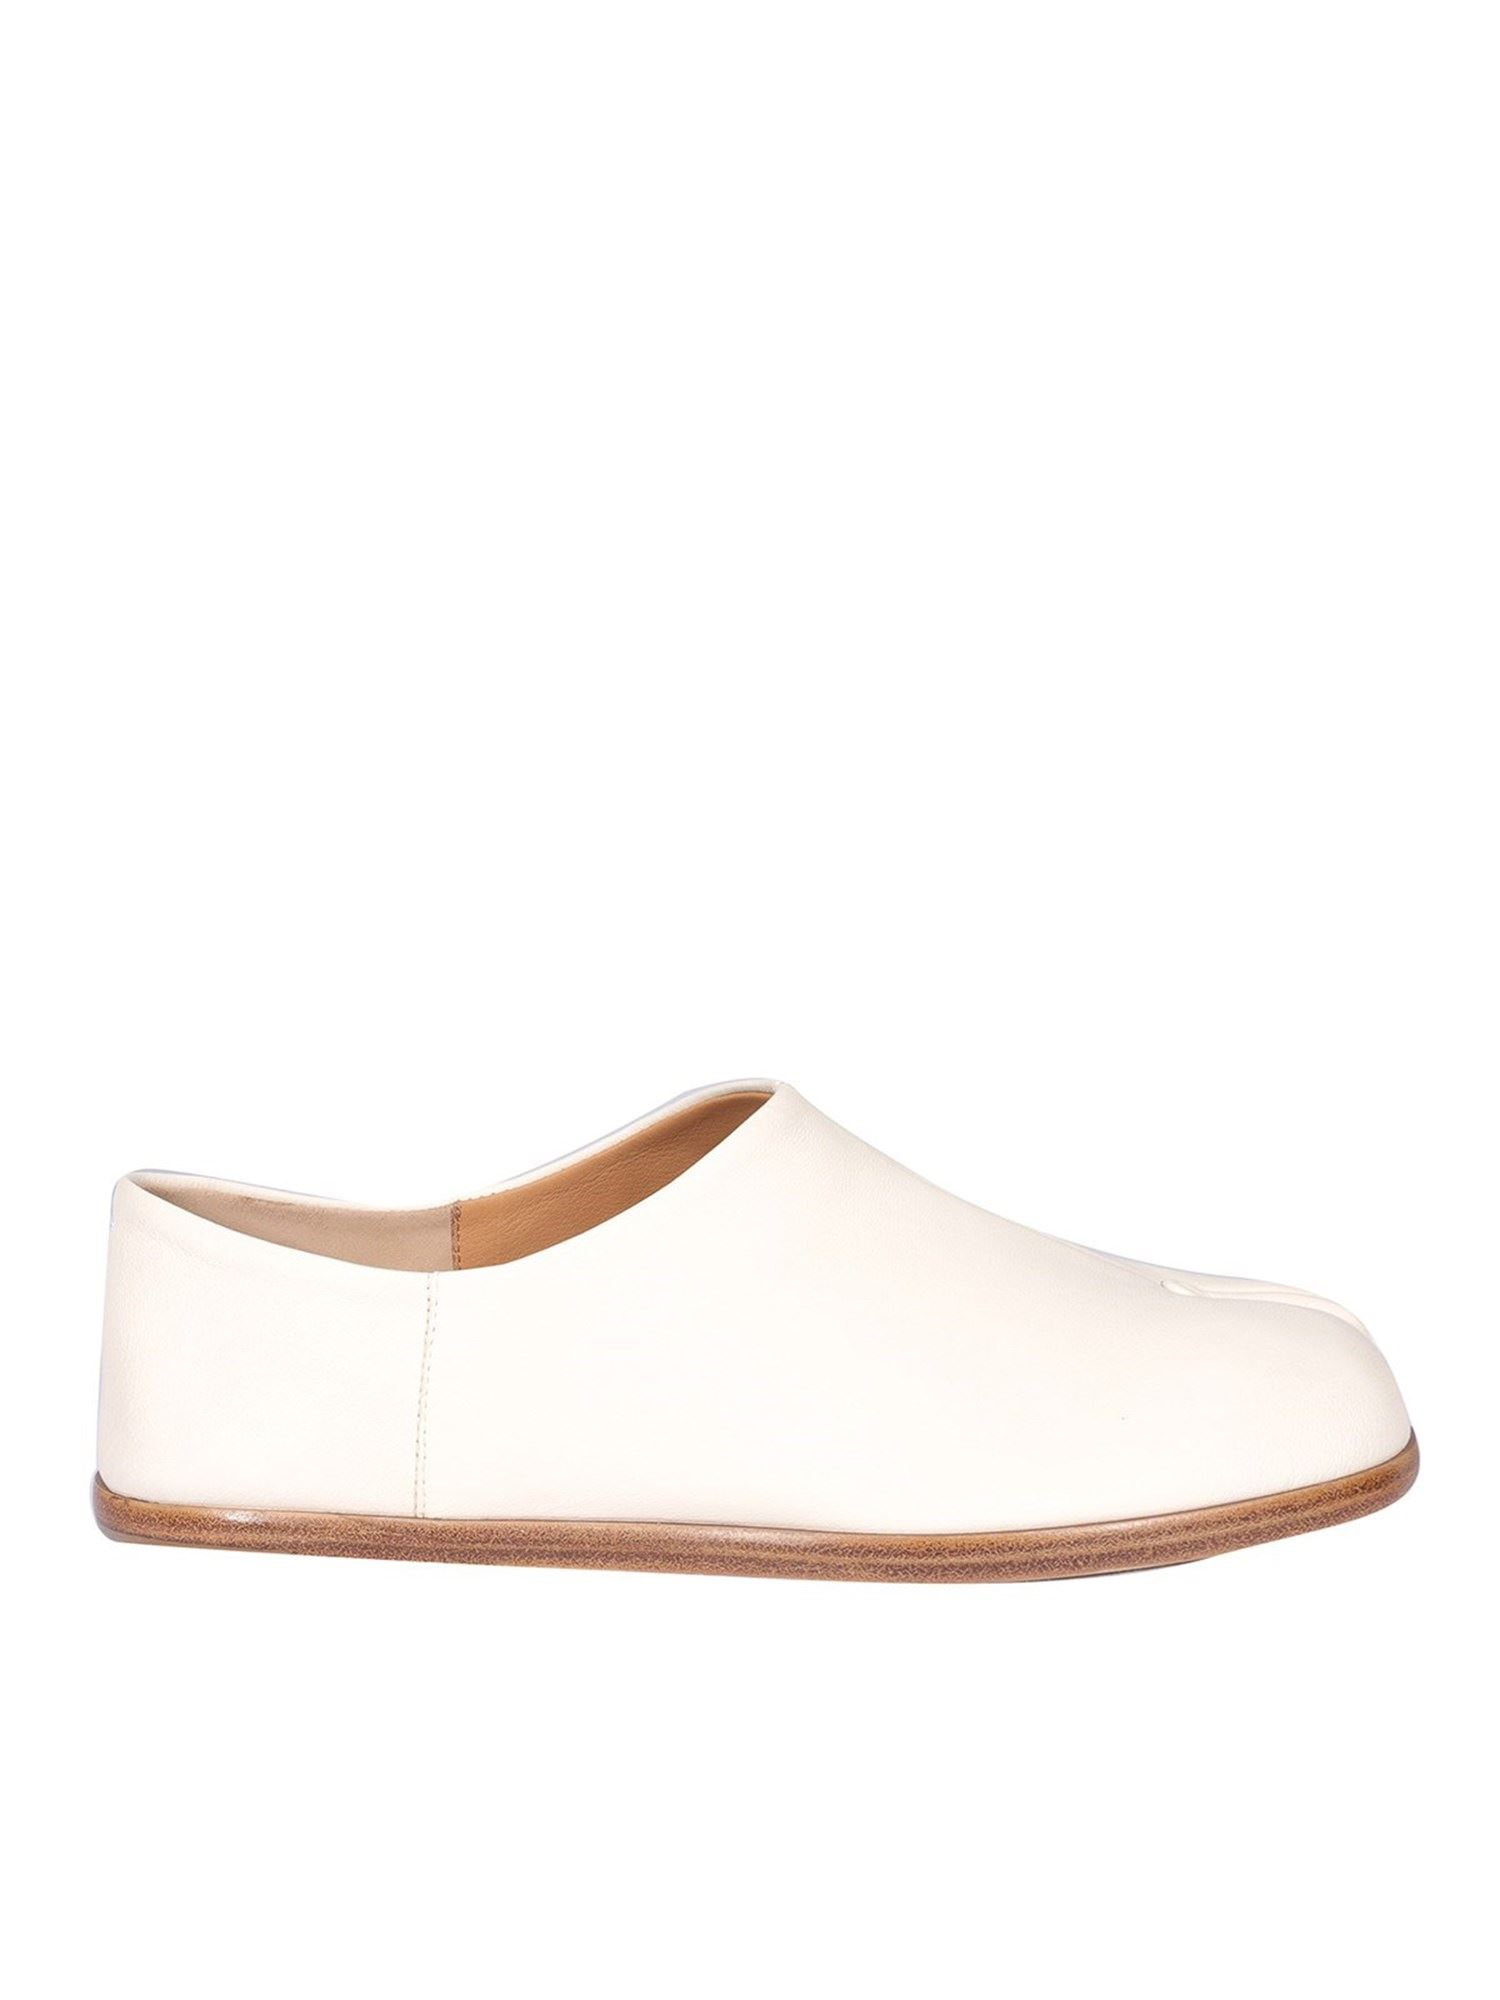 Maison Margiela TABI LOAFERS IN WHITE